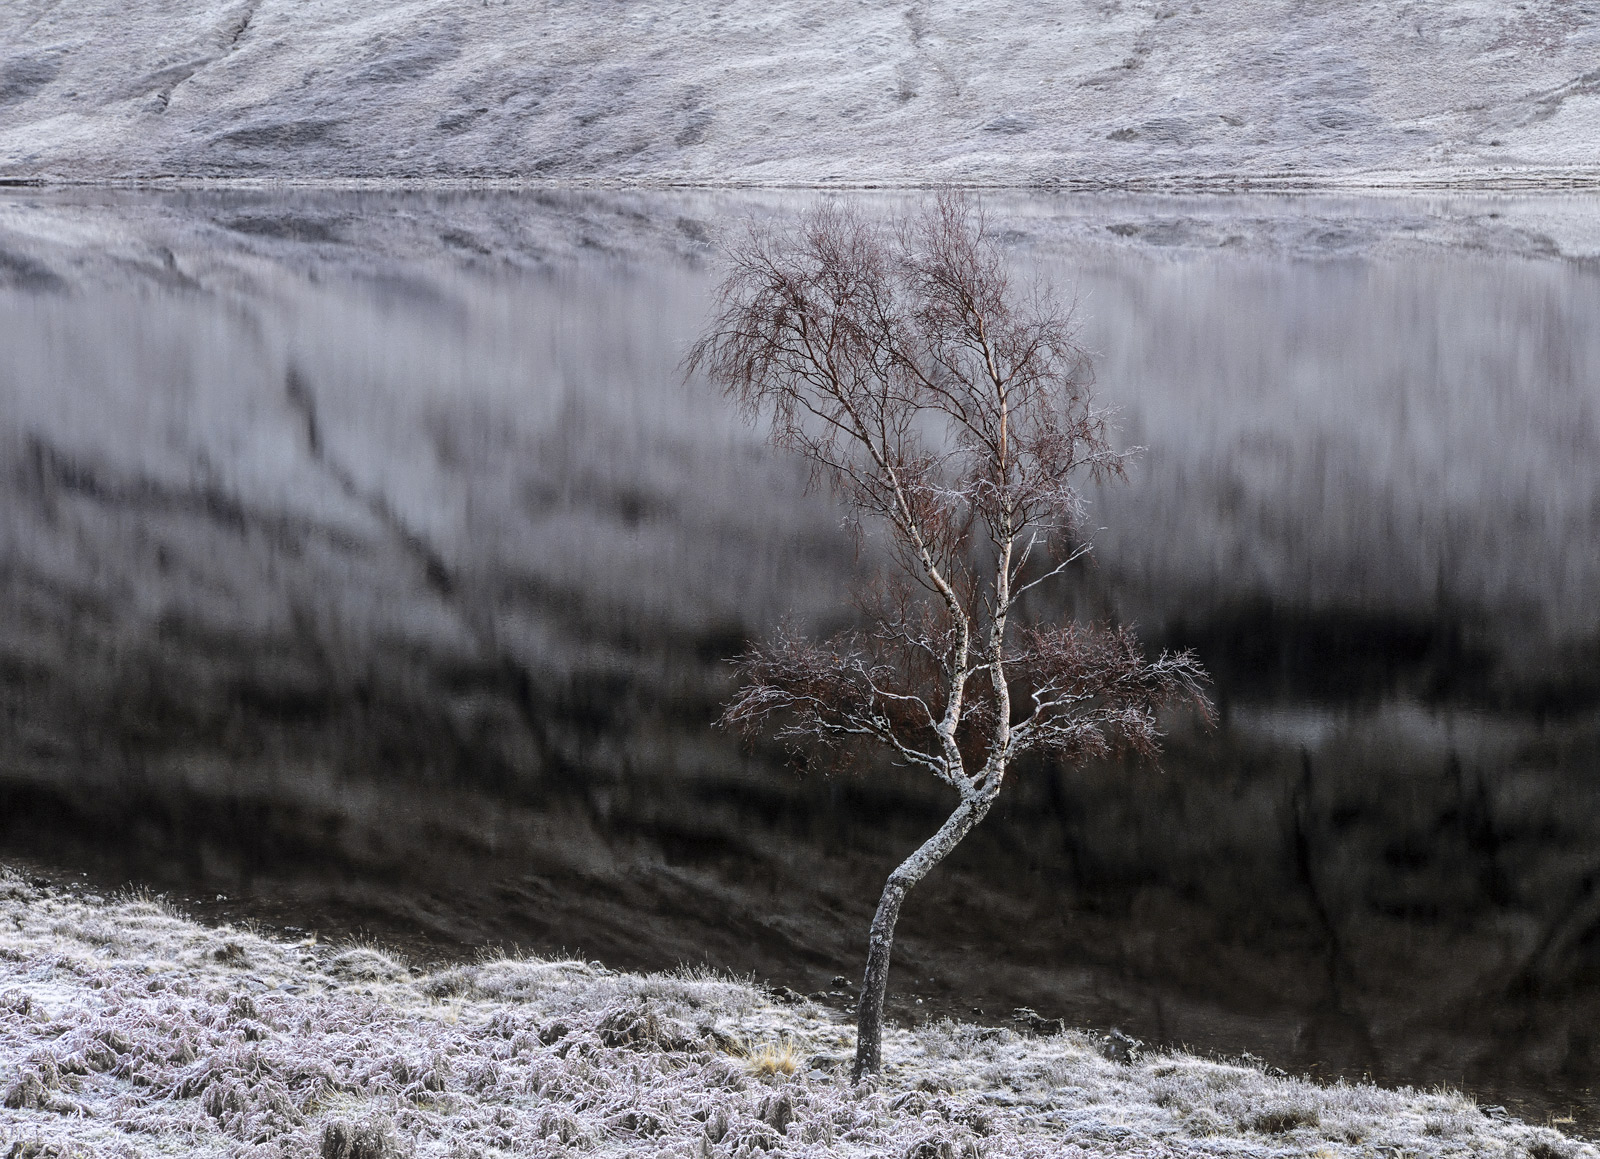 A single solitary birch tree tipped with rust red twigsstands by Loch A Chroisg with an immaculate mirror smooth reflective...